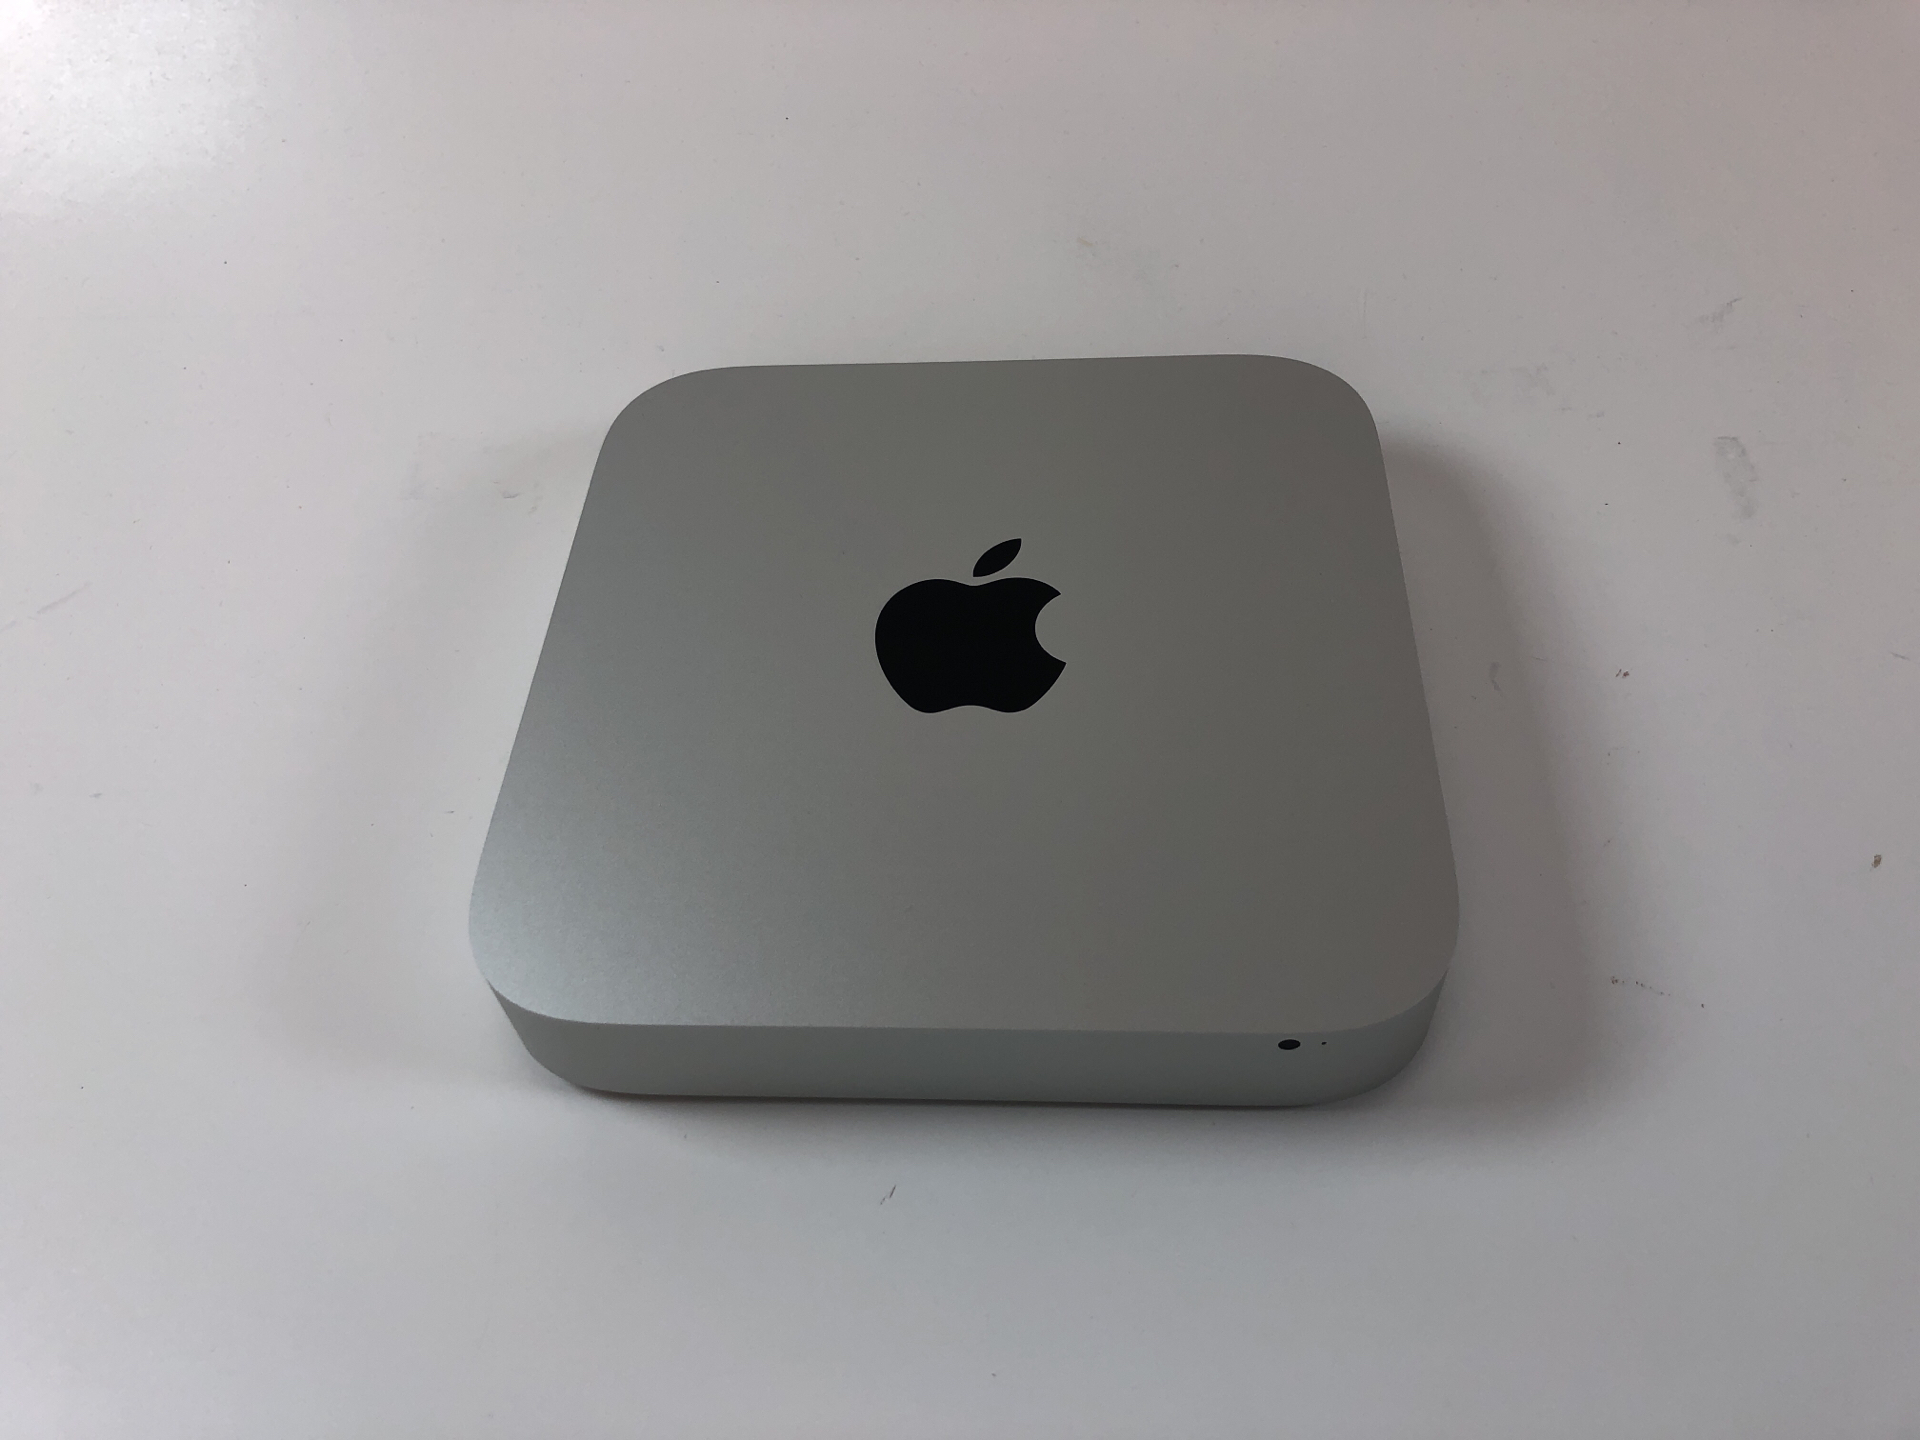 Mac Mini Late 2014 (Intel Core i5 2.6 GHz 8 GB RAM 1 TB HDD), Intel Core i5 2.6 GHz, 8 GB RAM, 1 TB HDD, bild 1